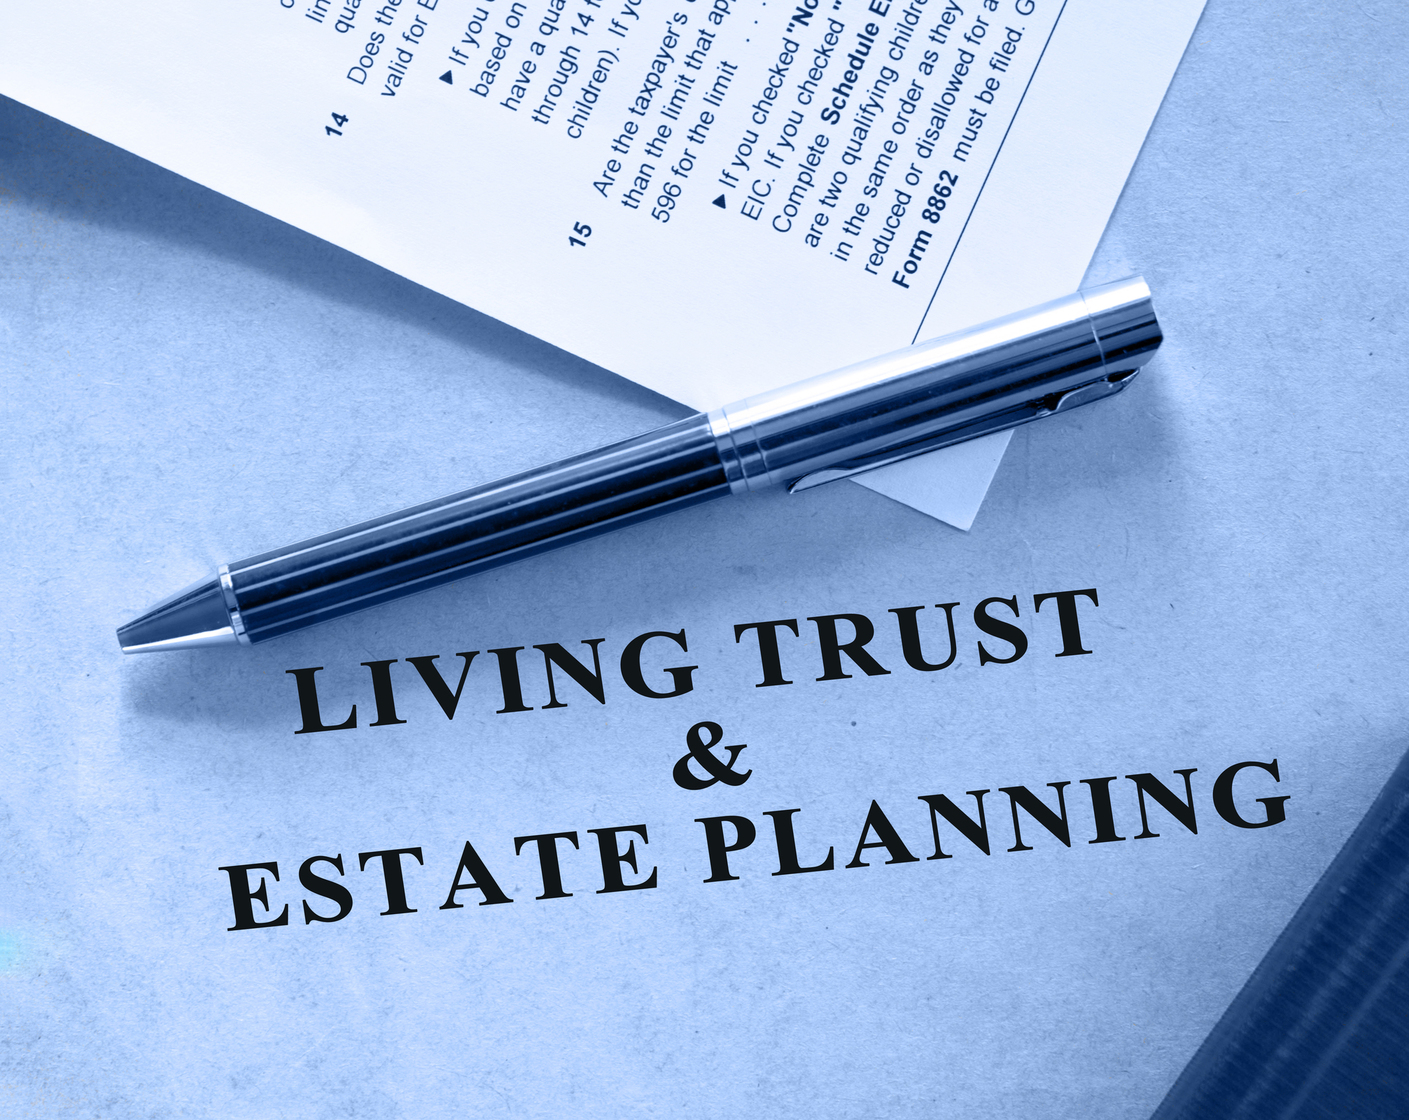 Estate Planning: A Guide for Those Without Children, and Widowed or Single